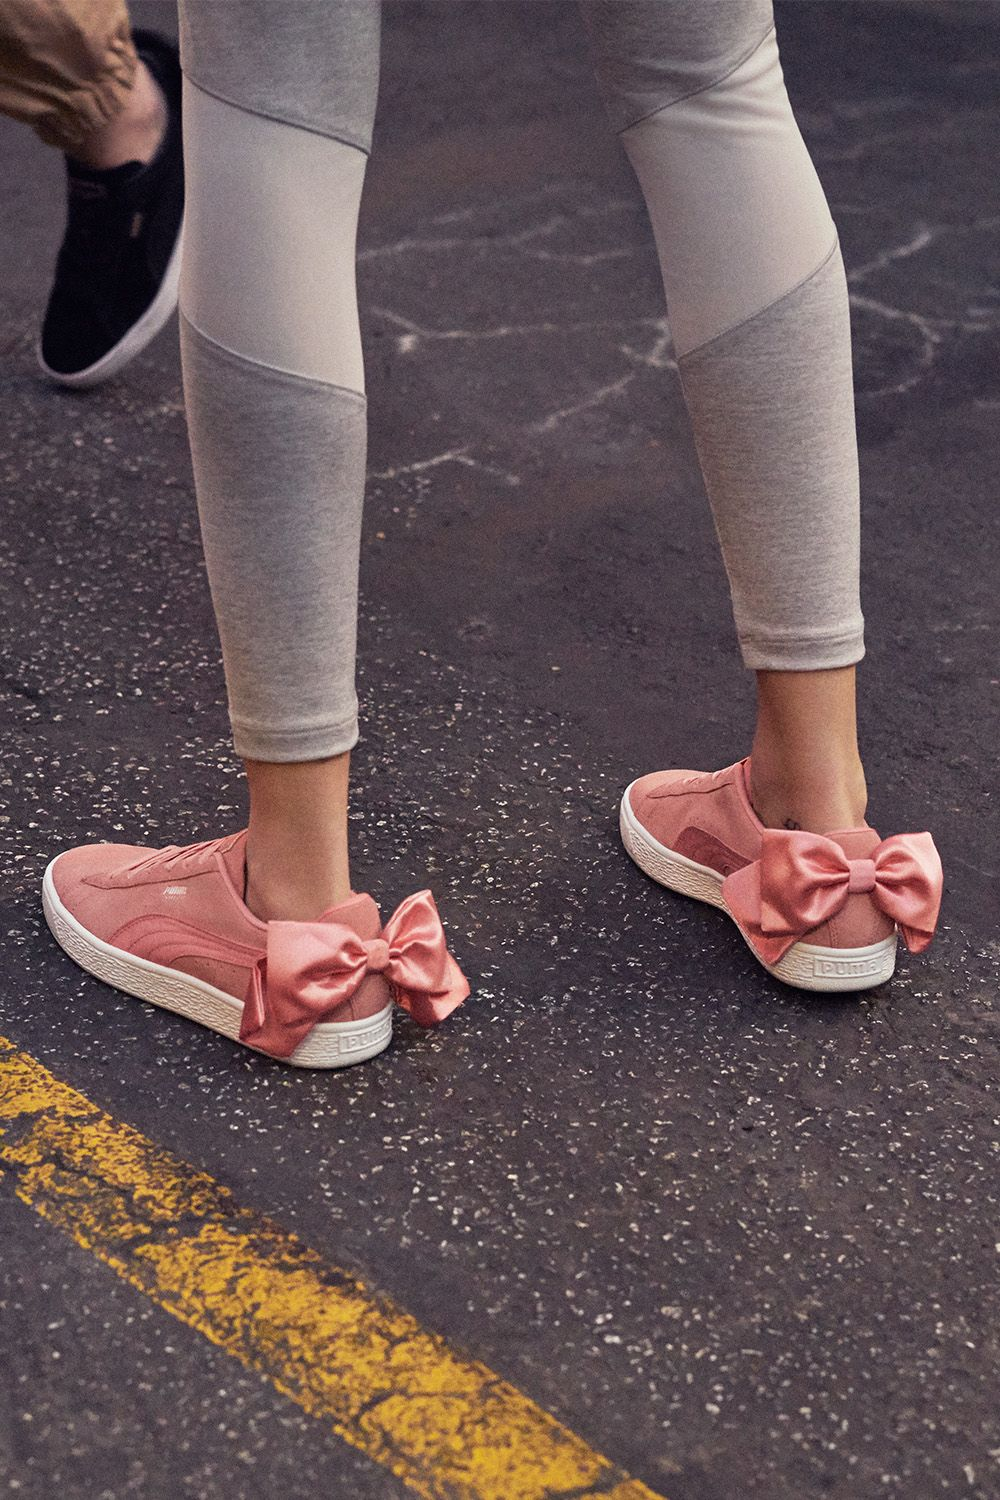 23fff4cd7911 Puma Suede Bow  kultsneaker  sneaker  puma  bow  rosa  pink  trend  style   fashion  mode  schuhe  glamour  glamourgermany